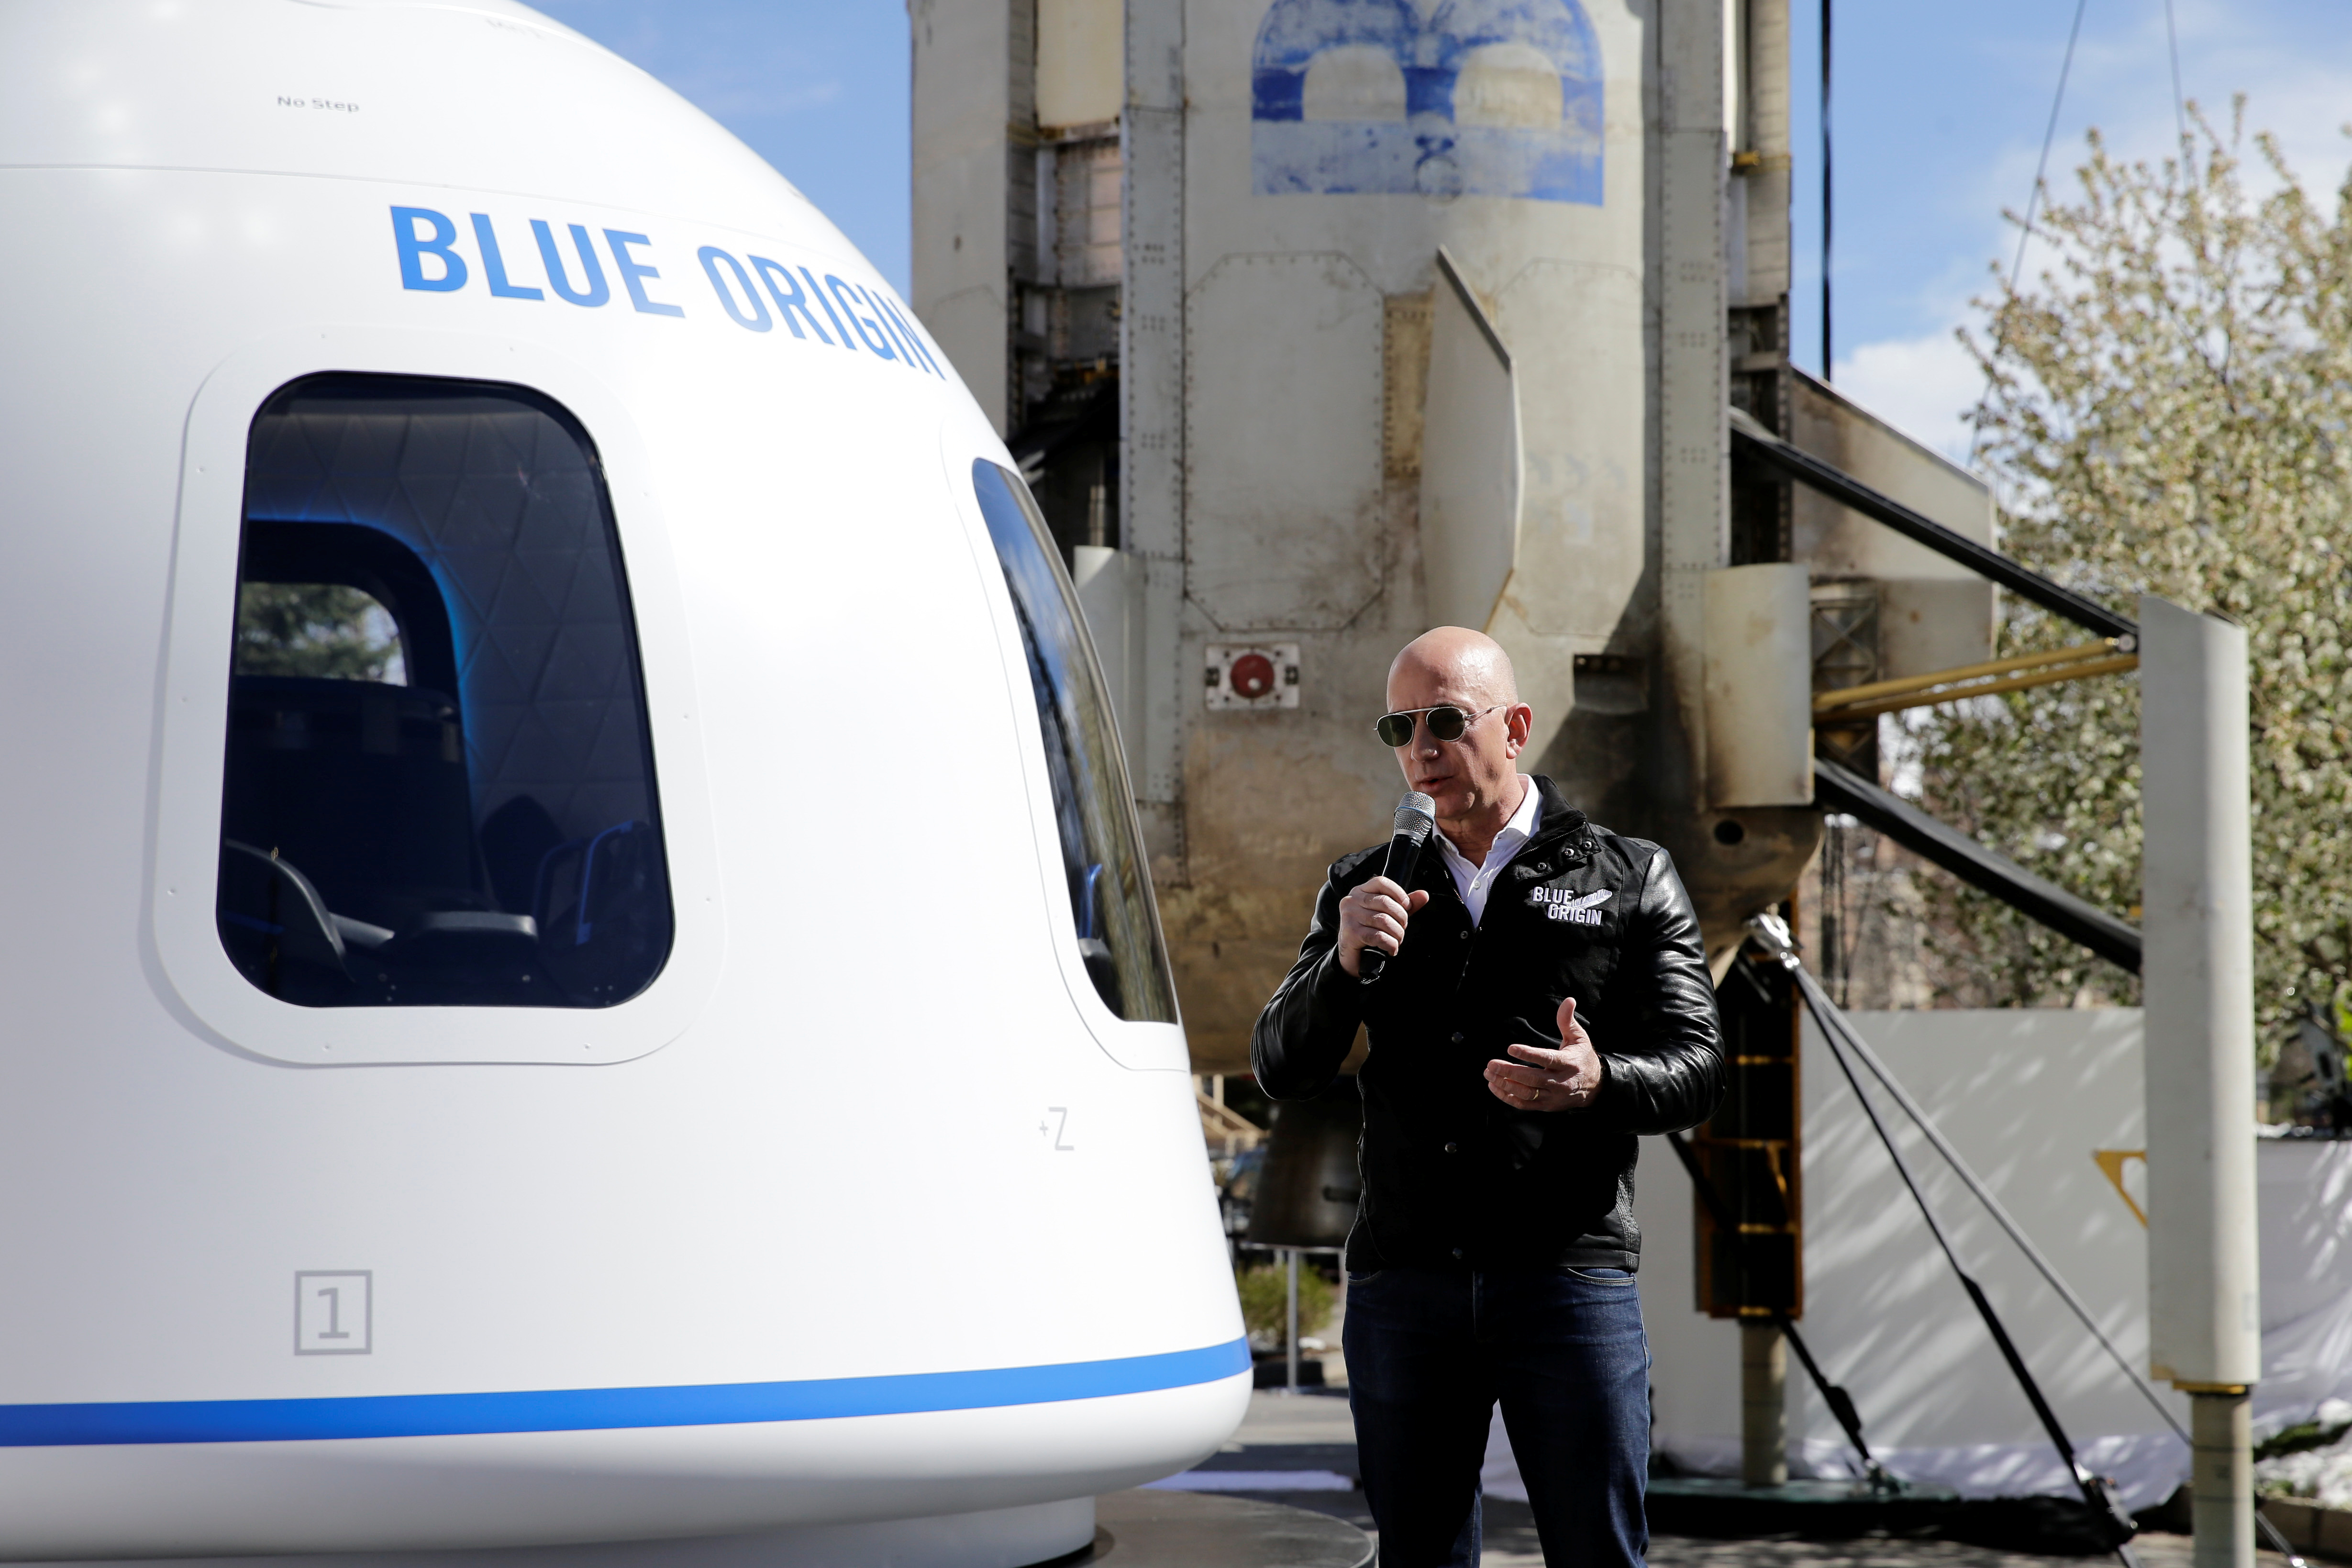 Blue Origin received FAA approval for its first human spaceflight on July 20th